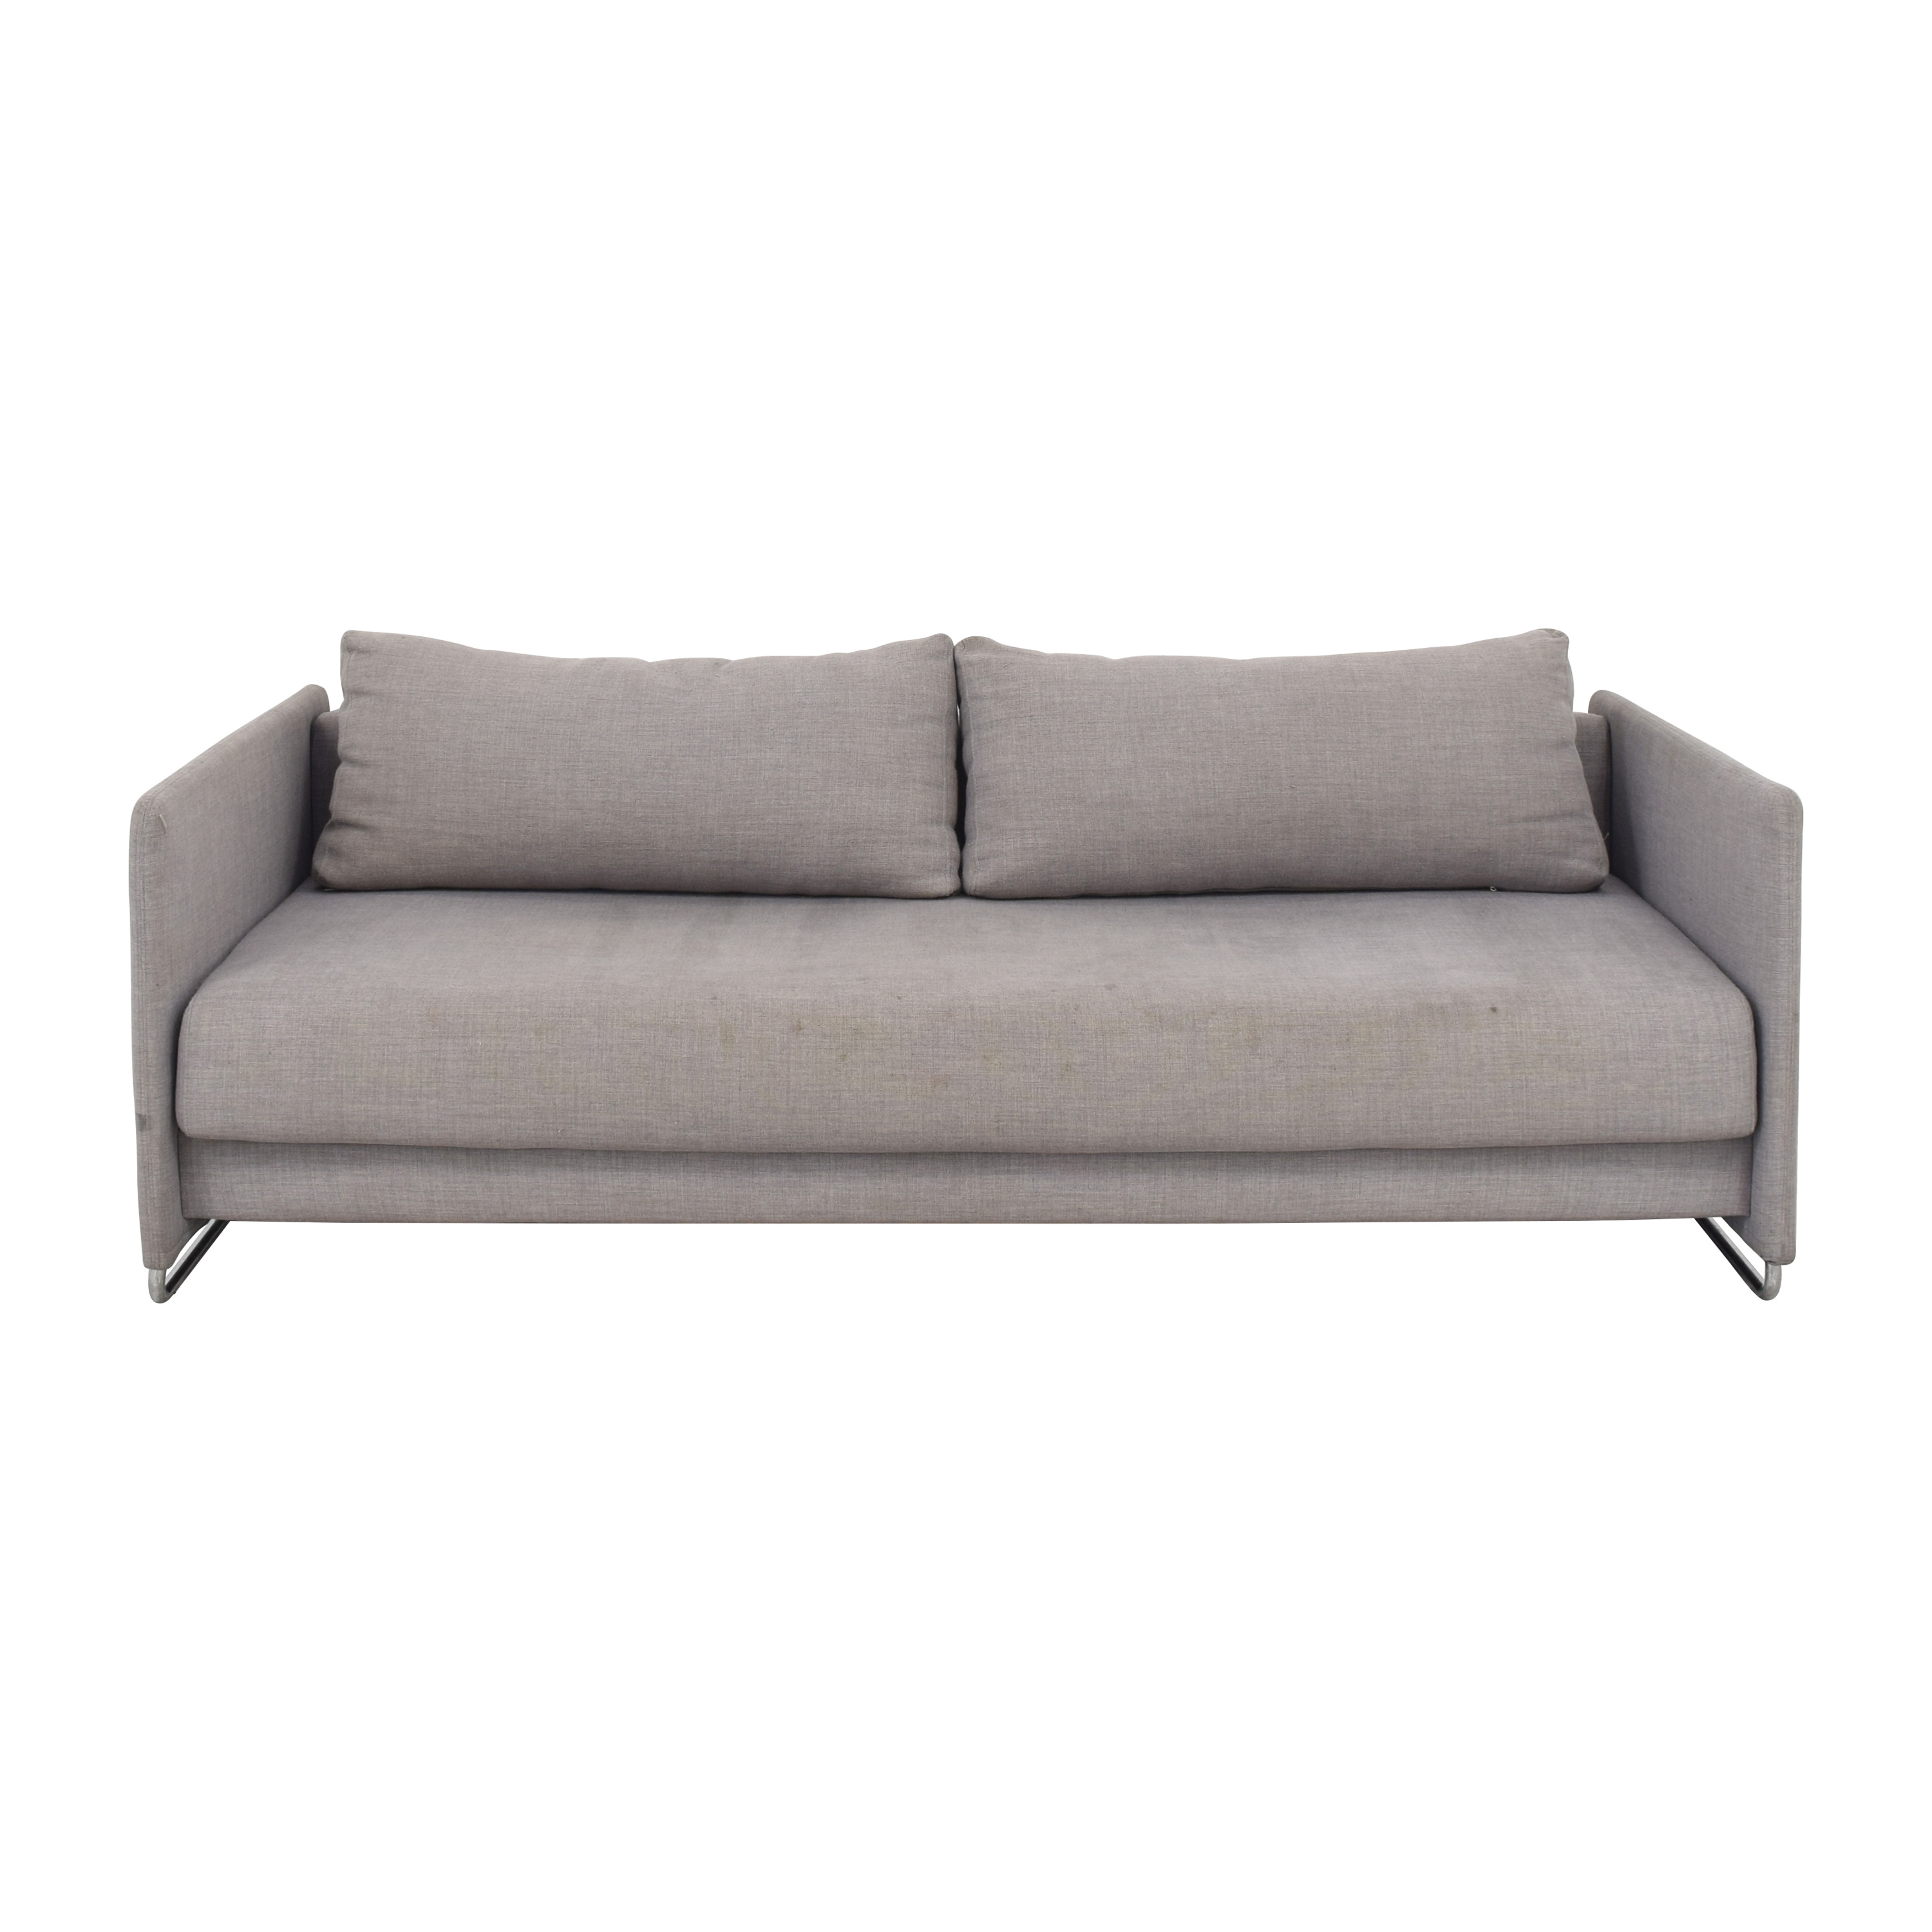 CB2 CB2 Tandom Sleeper Sofa for sale